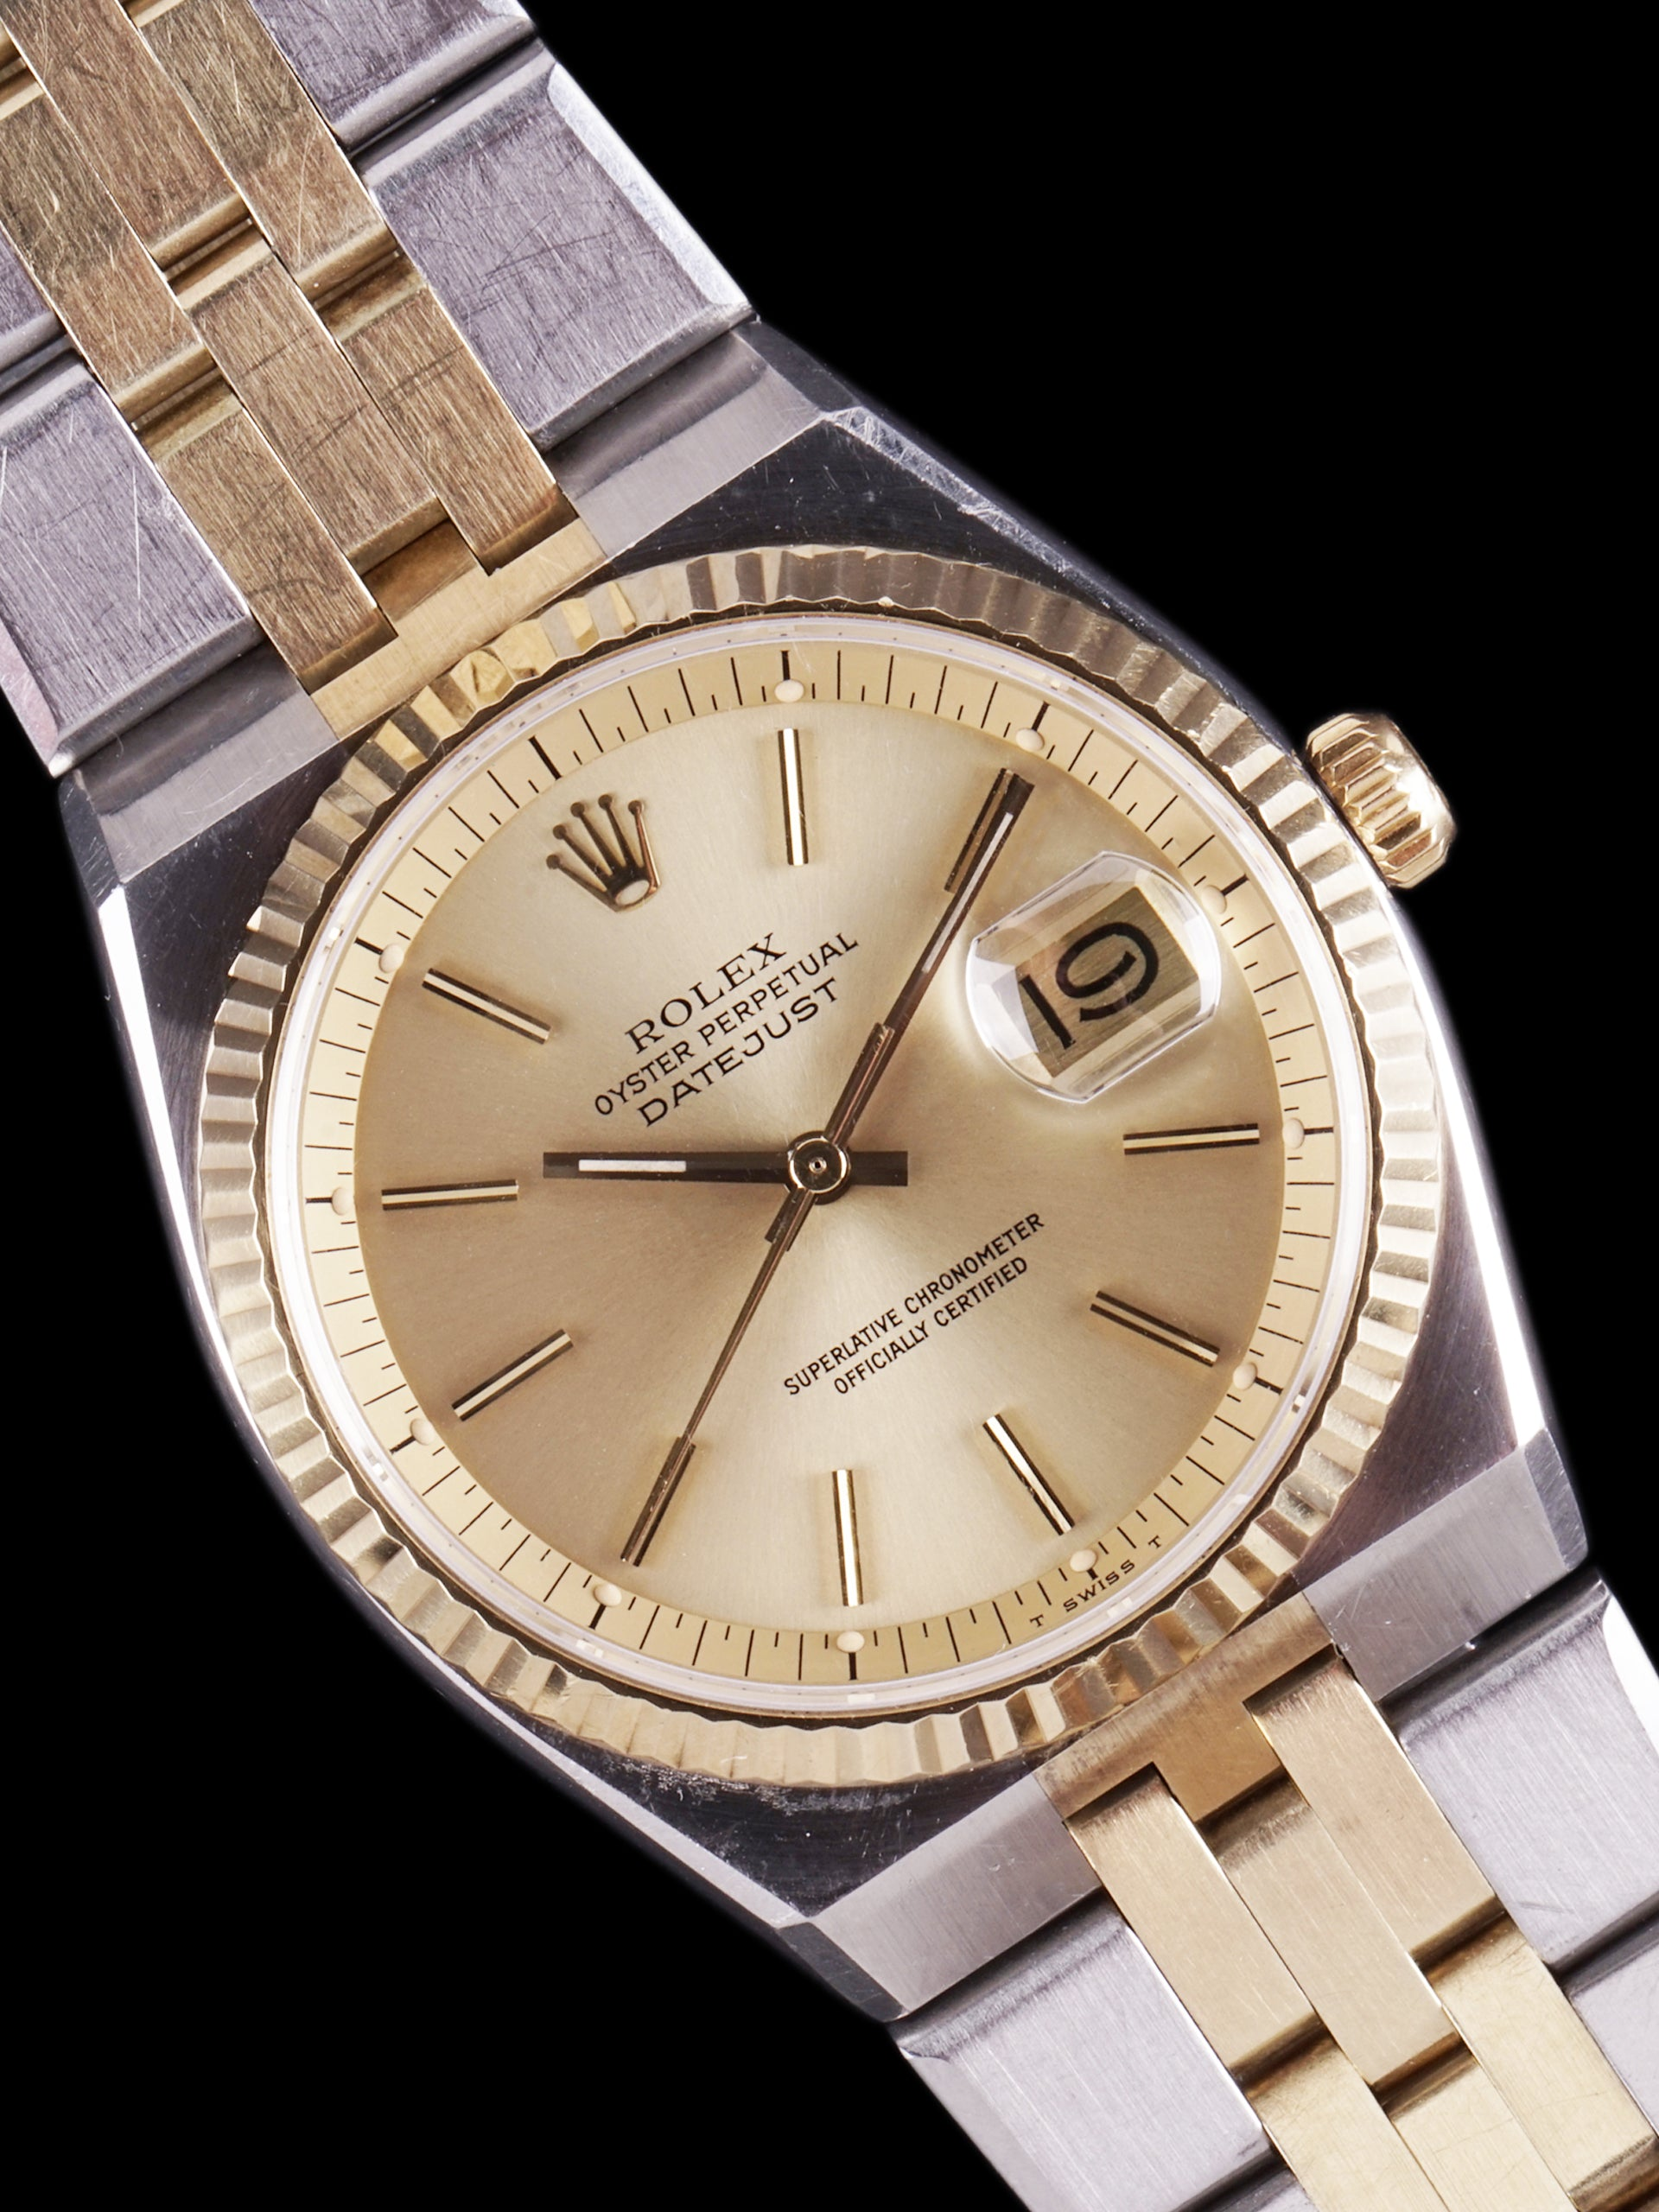 1978 Rolex Two-Tone Datejust (Ref. 1630)